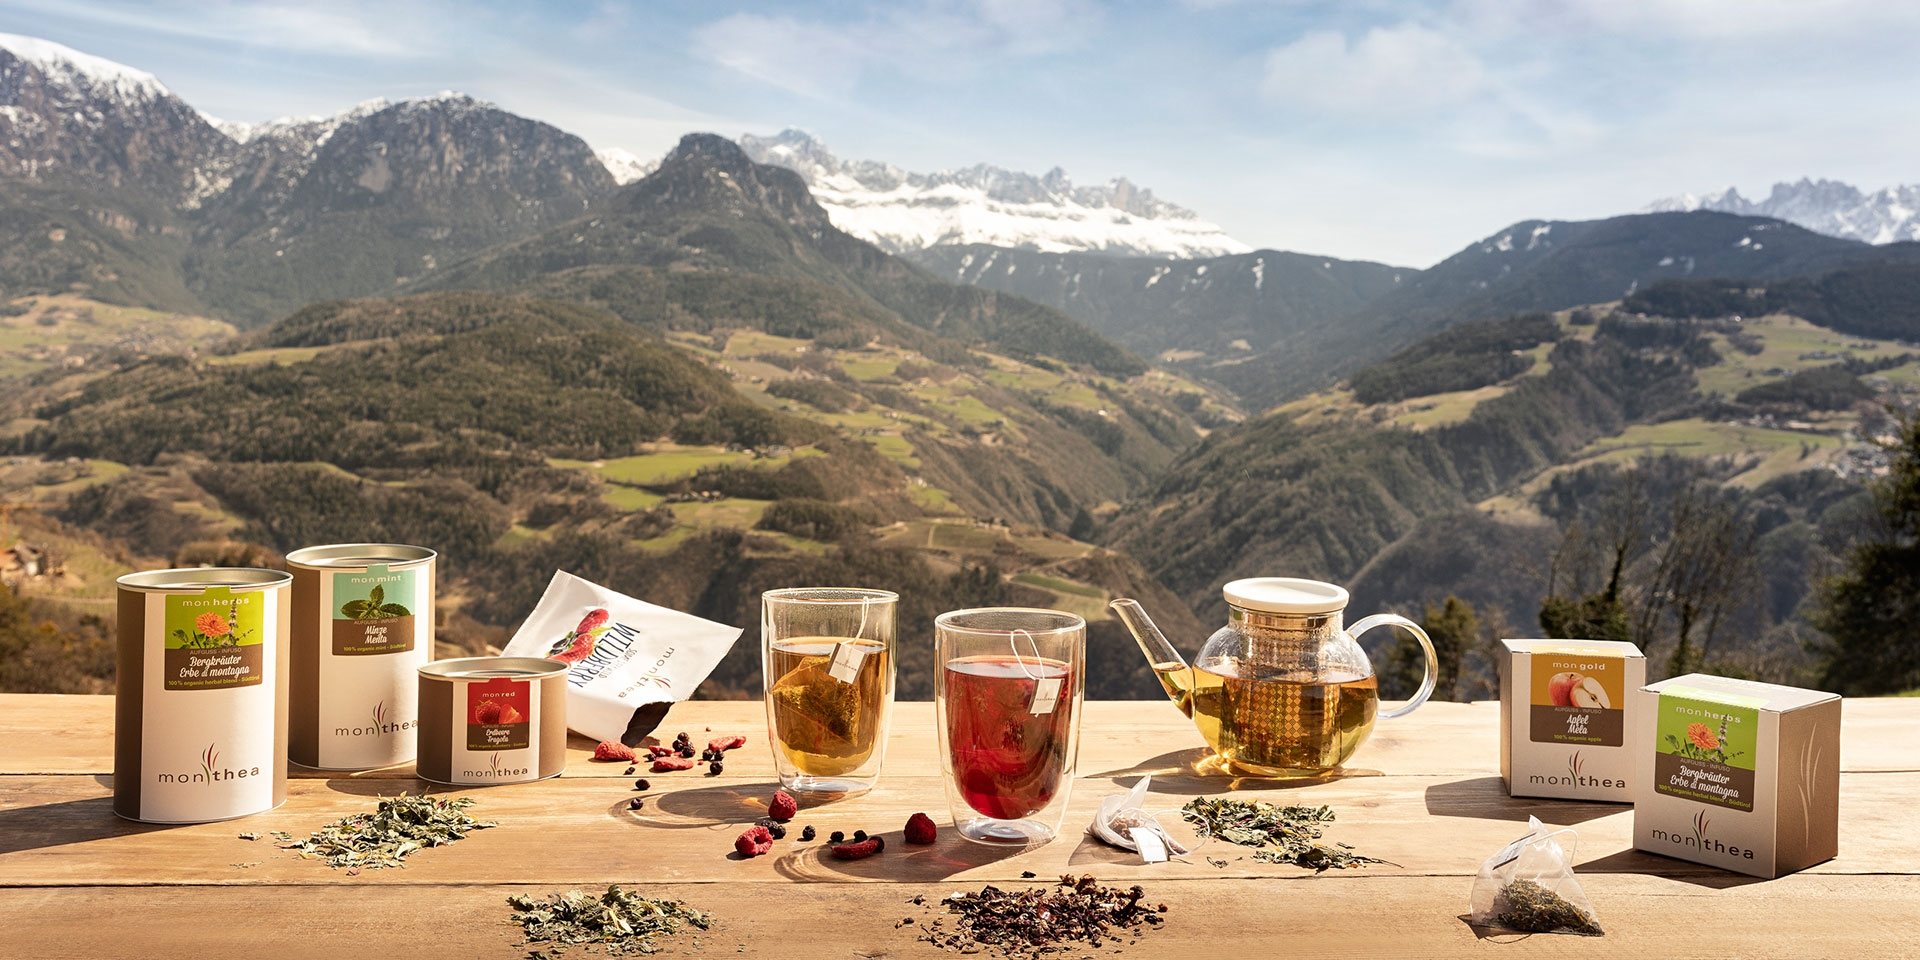 Monthea: Organic Tea of organic and locally grown fruit and herbs from South Tyrol